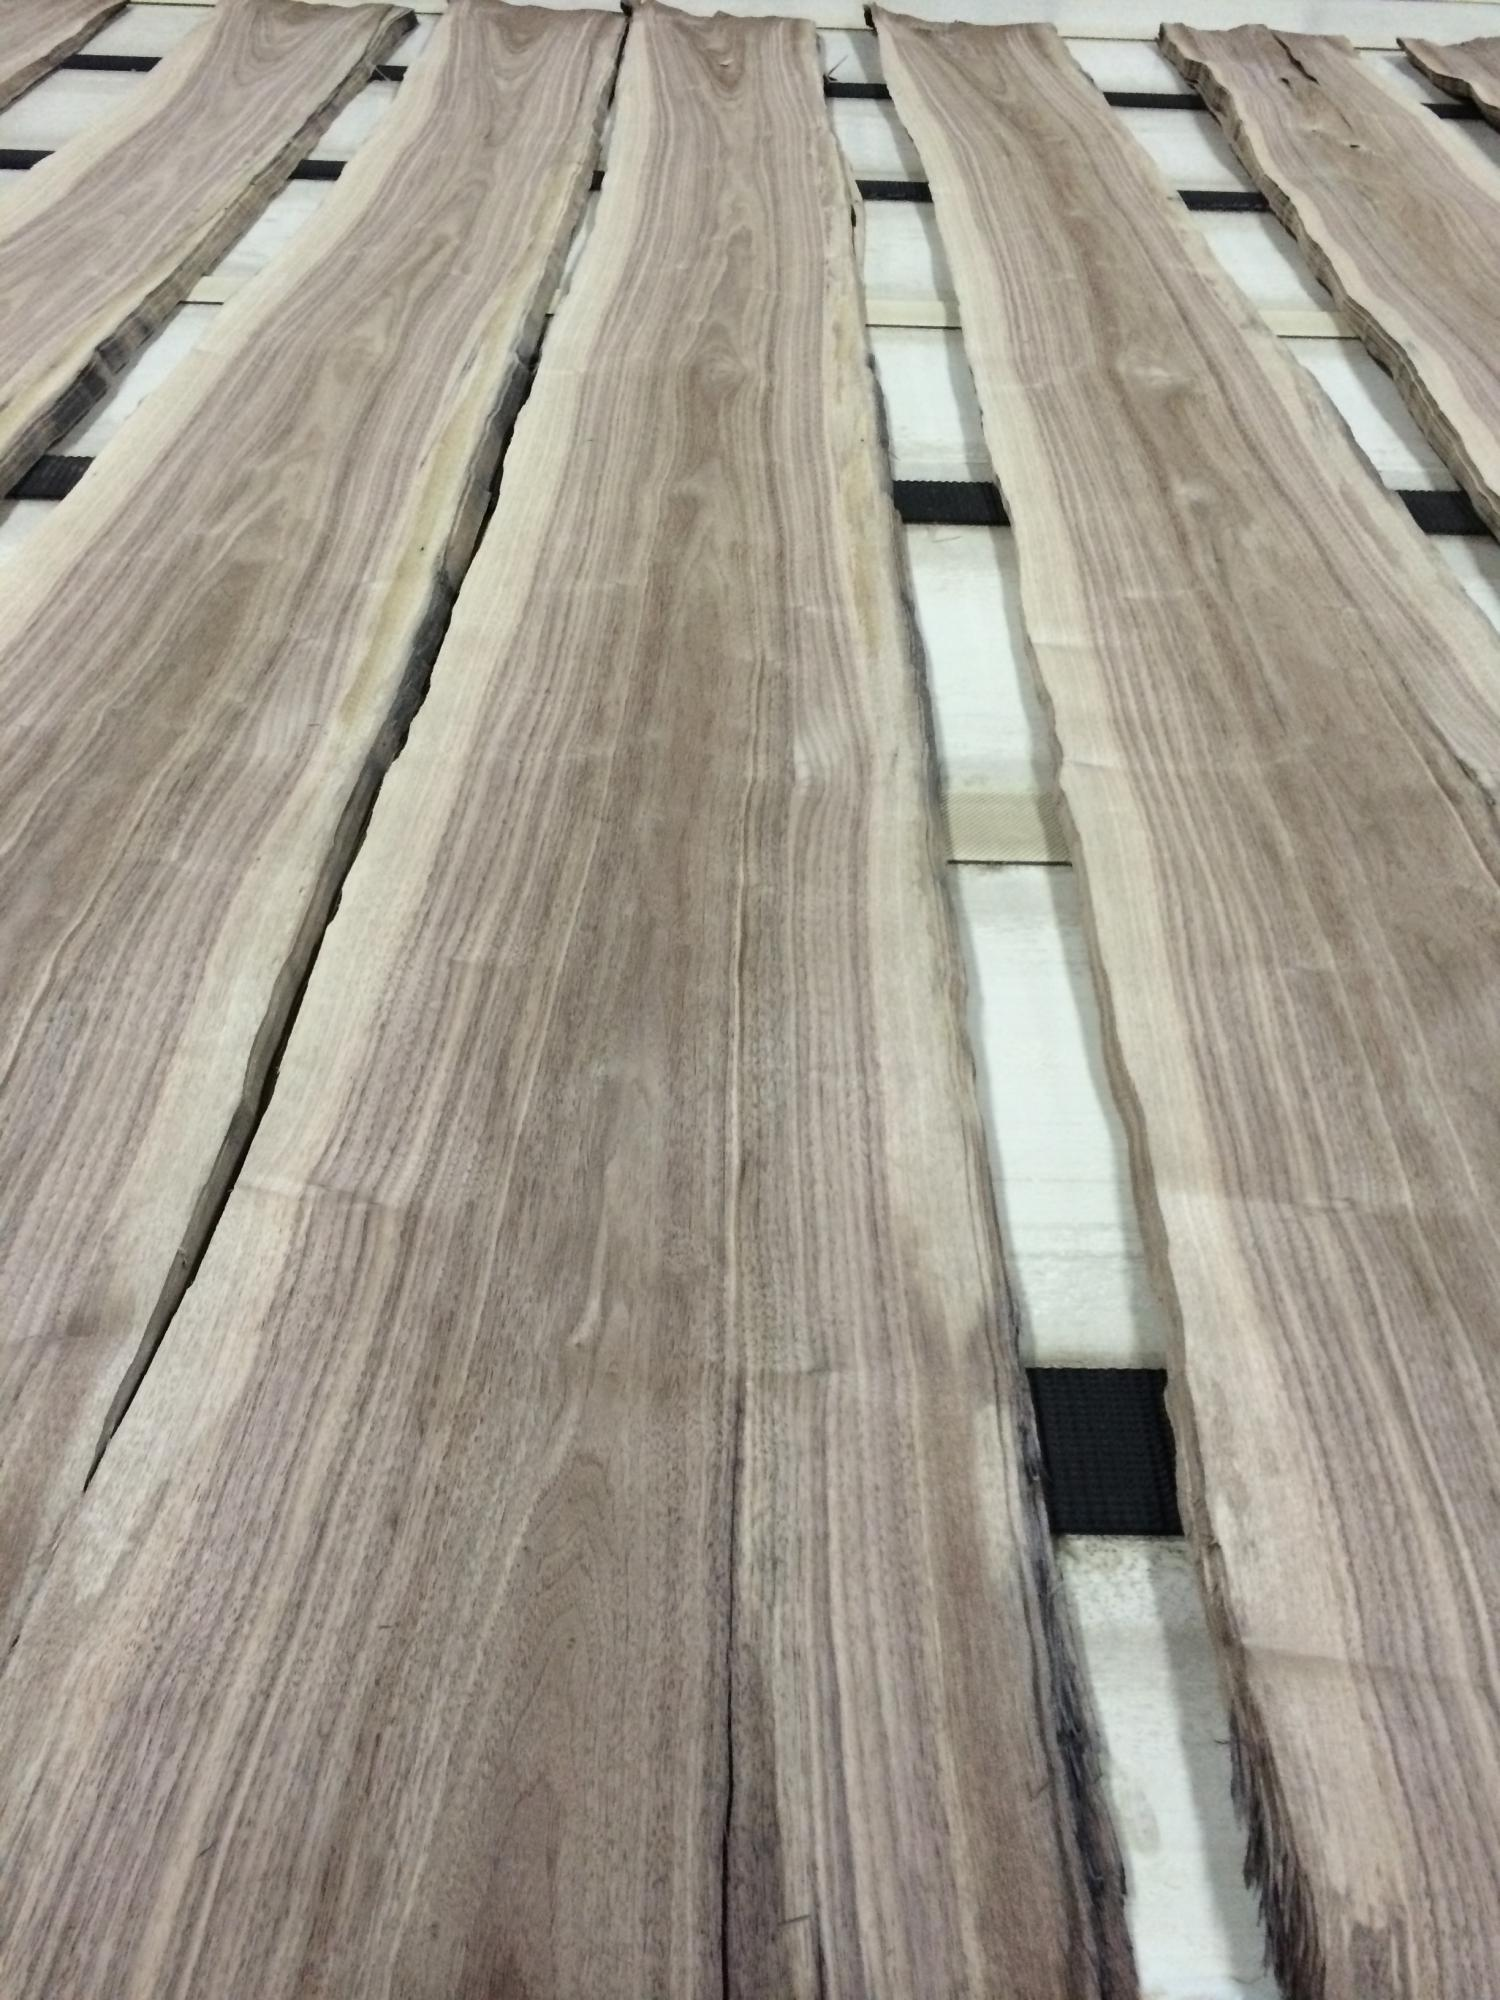 NCFP Walnut Flooring Veneer